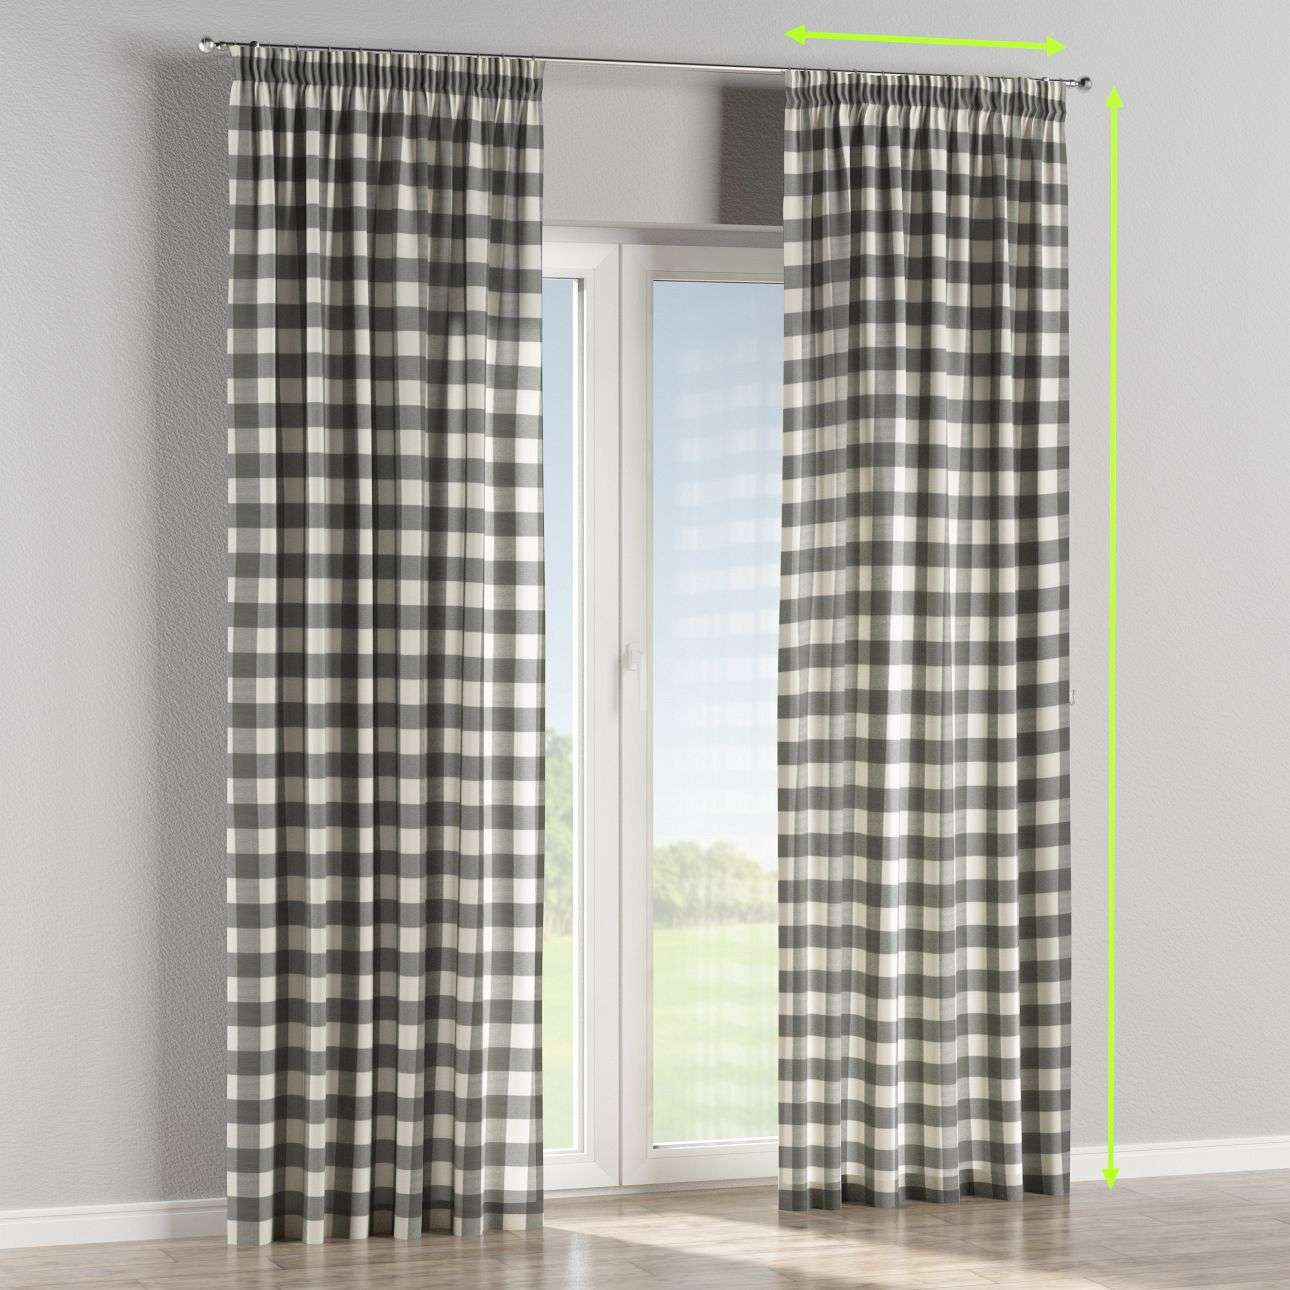 Pencil pleat lined curtains in collection Quadro, fabric: 136-13